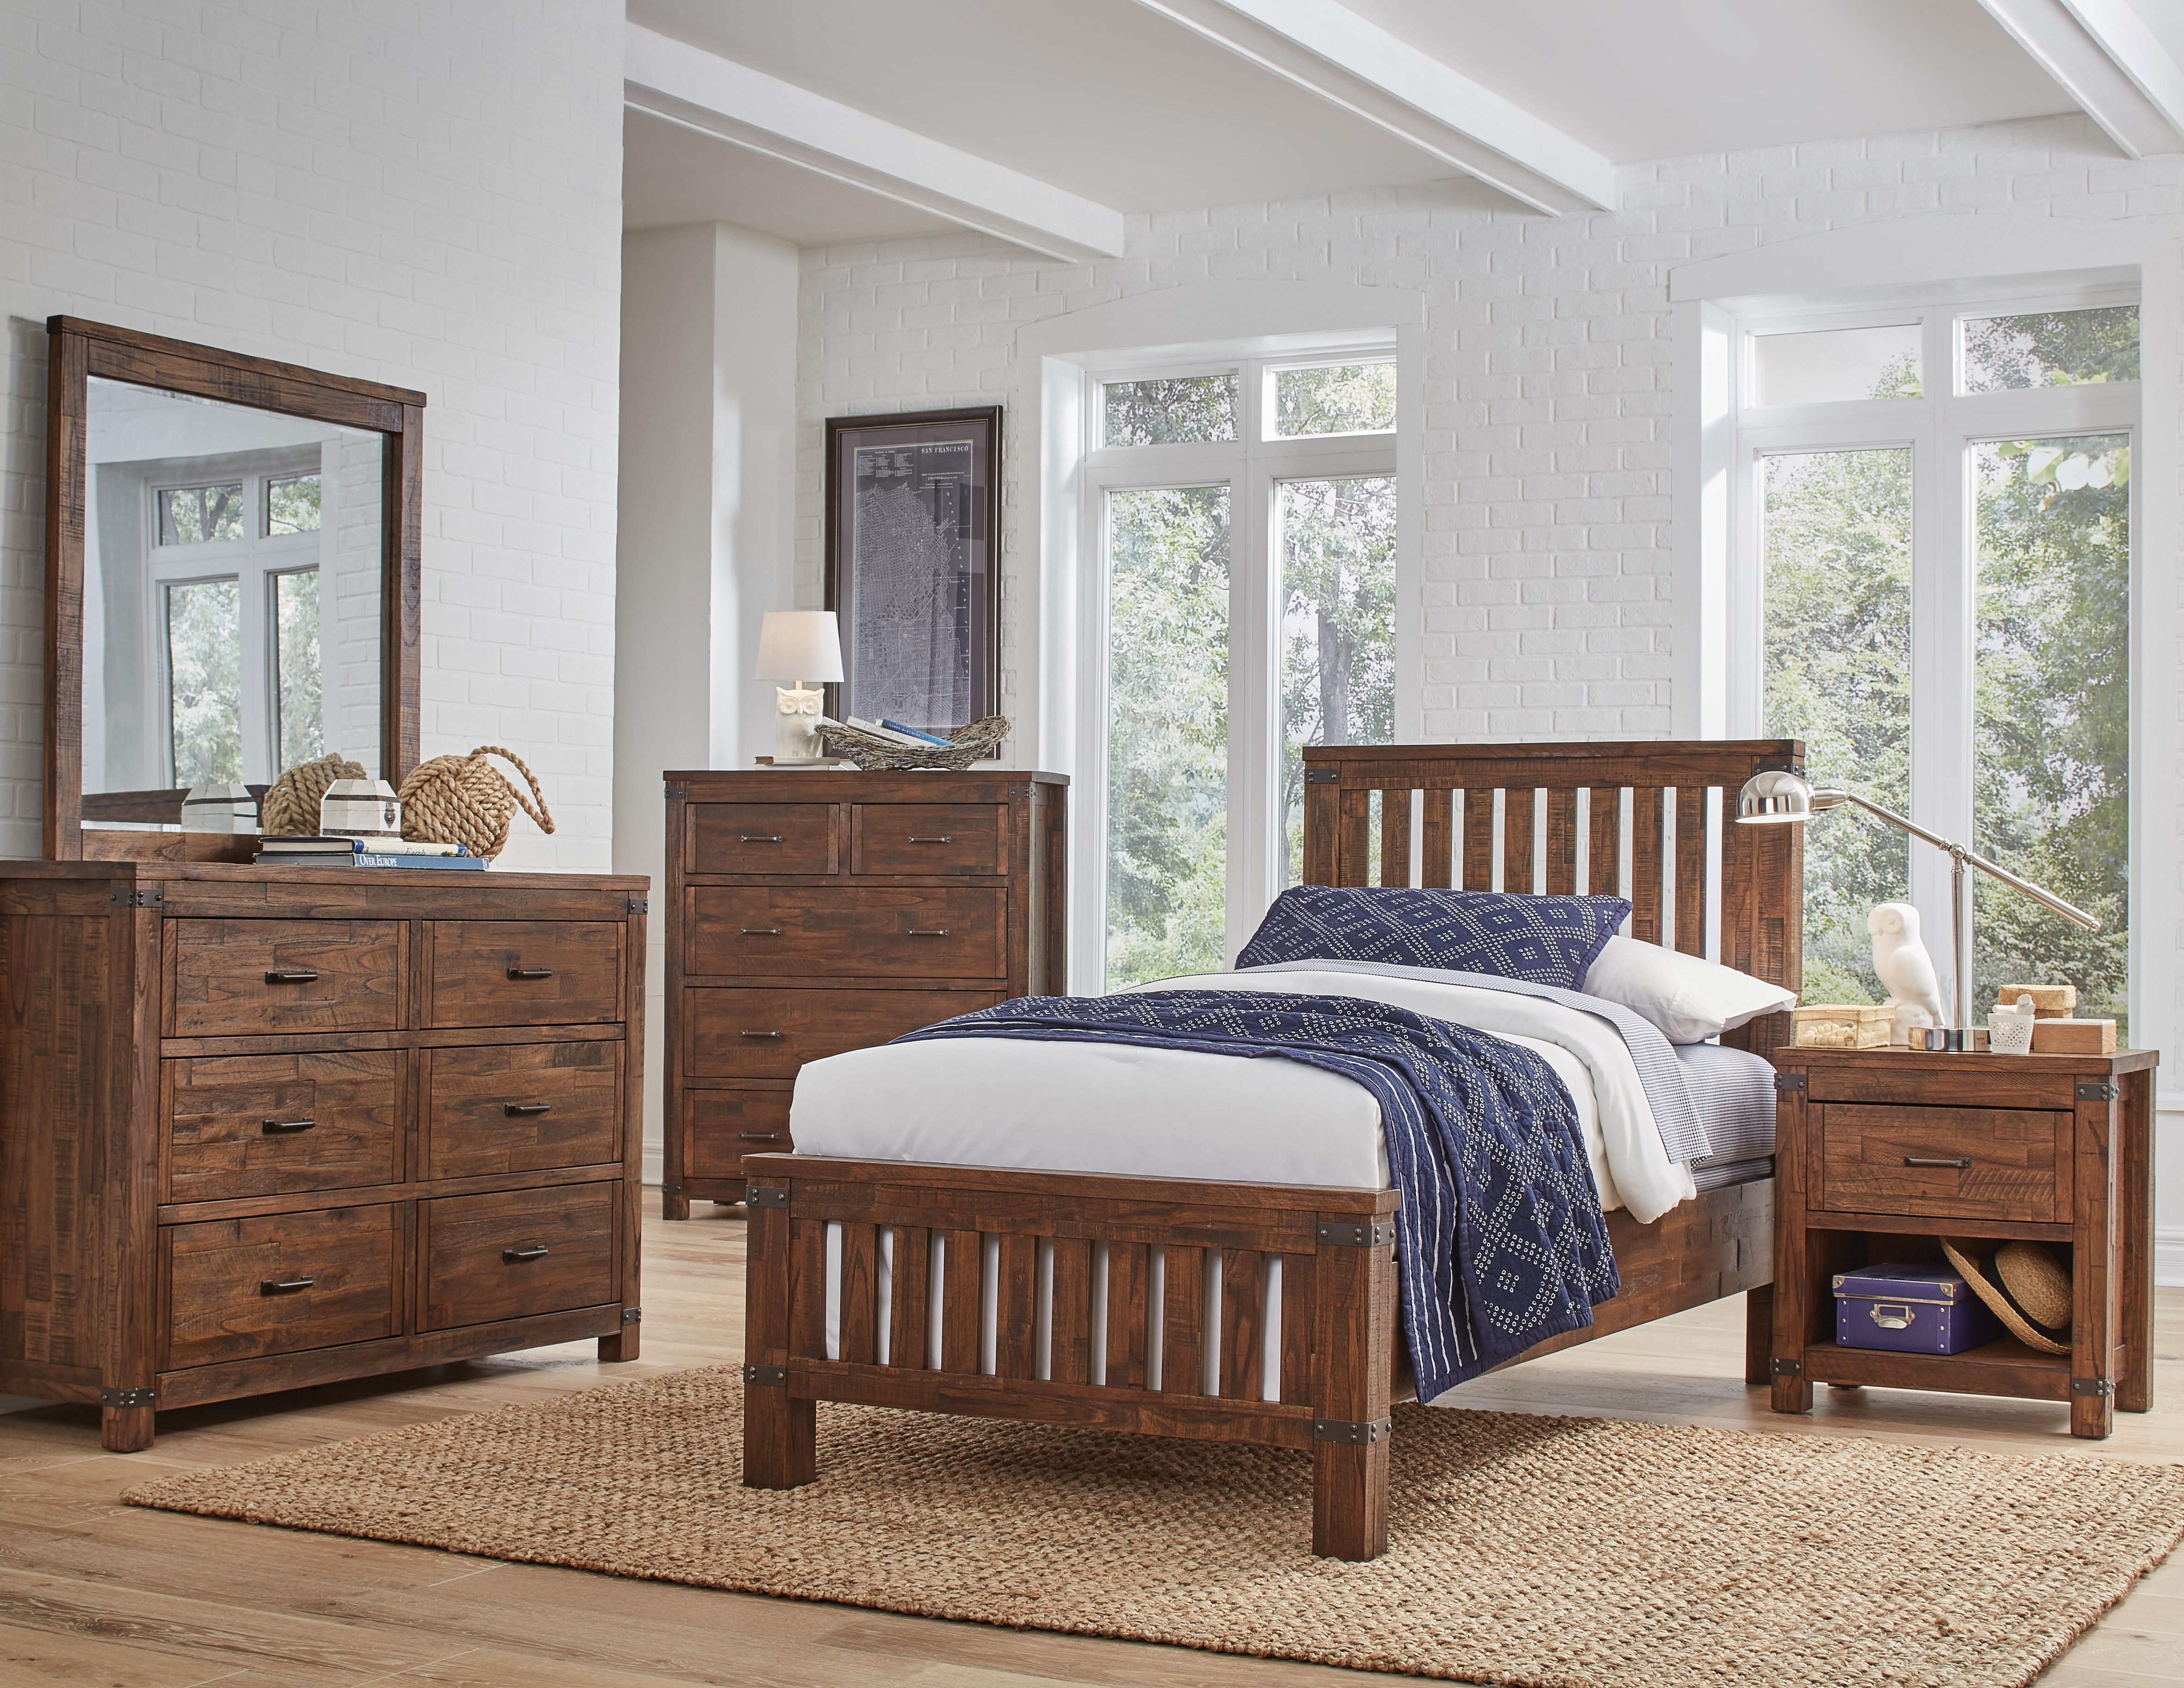 Lil Everett 4 Piece Twin Bedroom - Weathered Natural